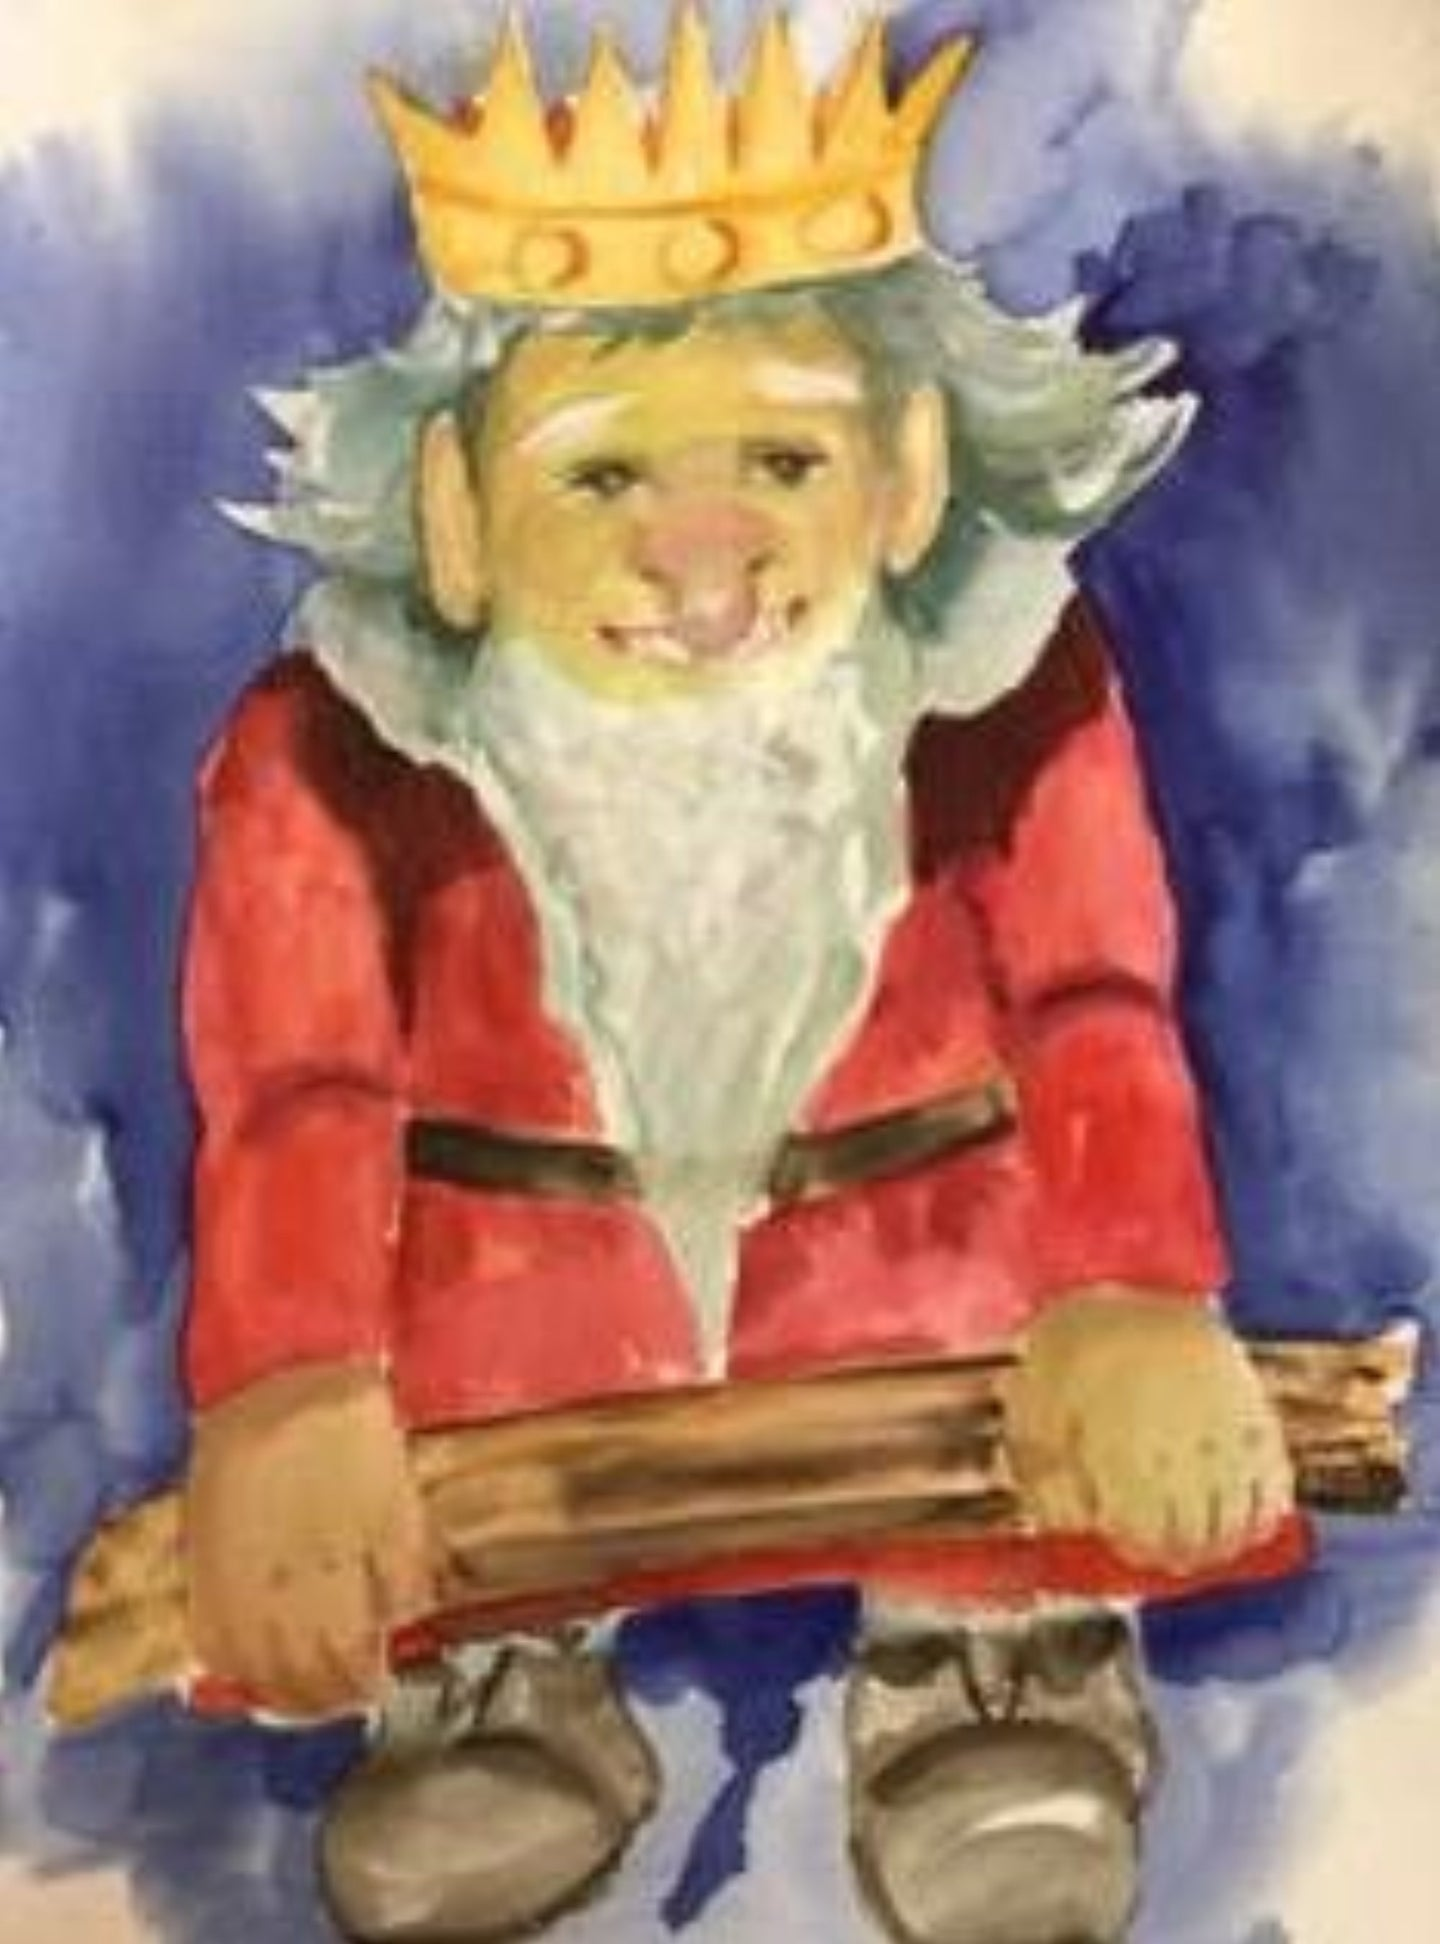 #1 Original - Gnome 'King Cunibert the Ist'